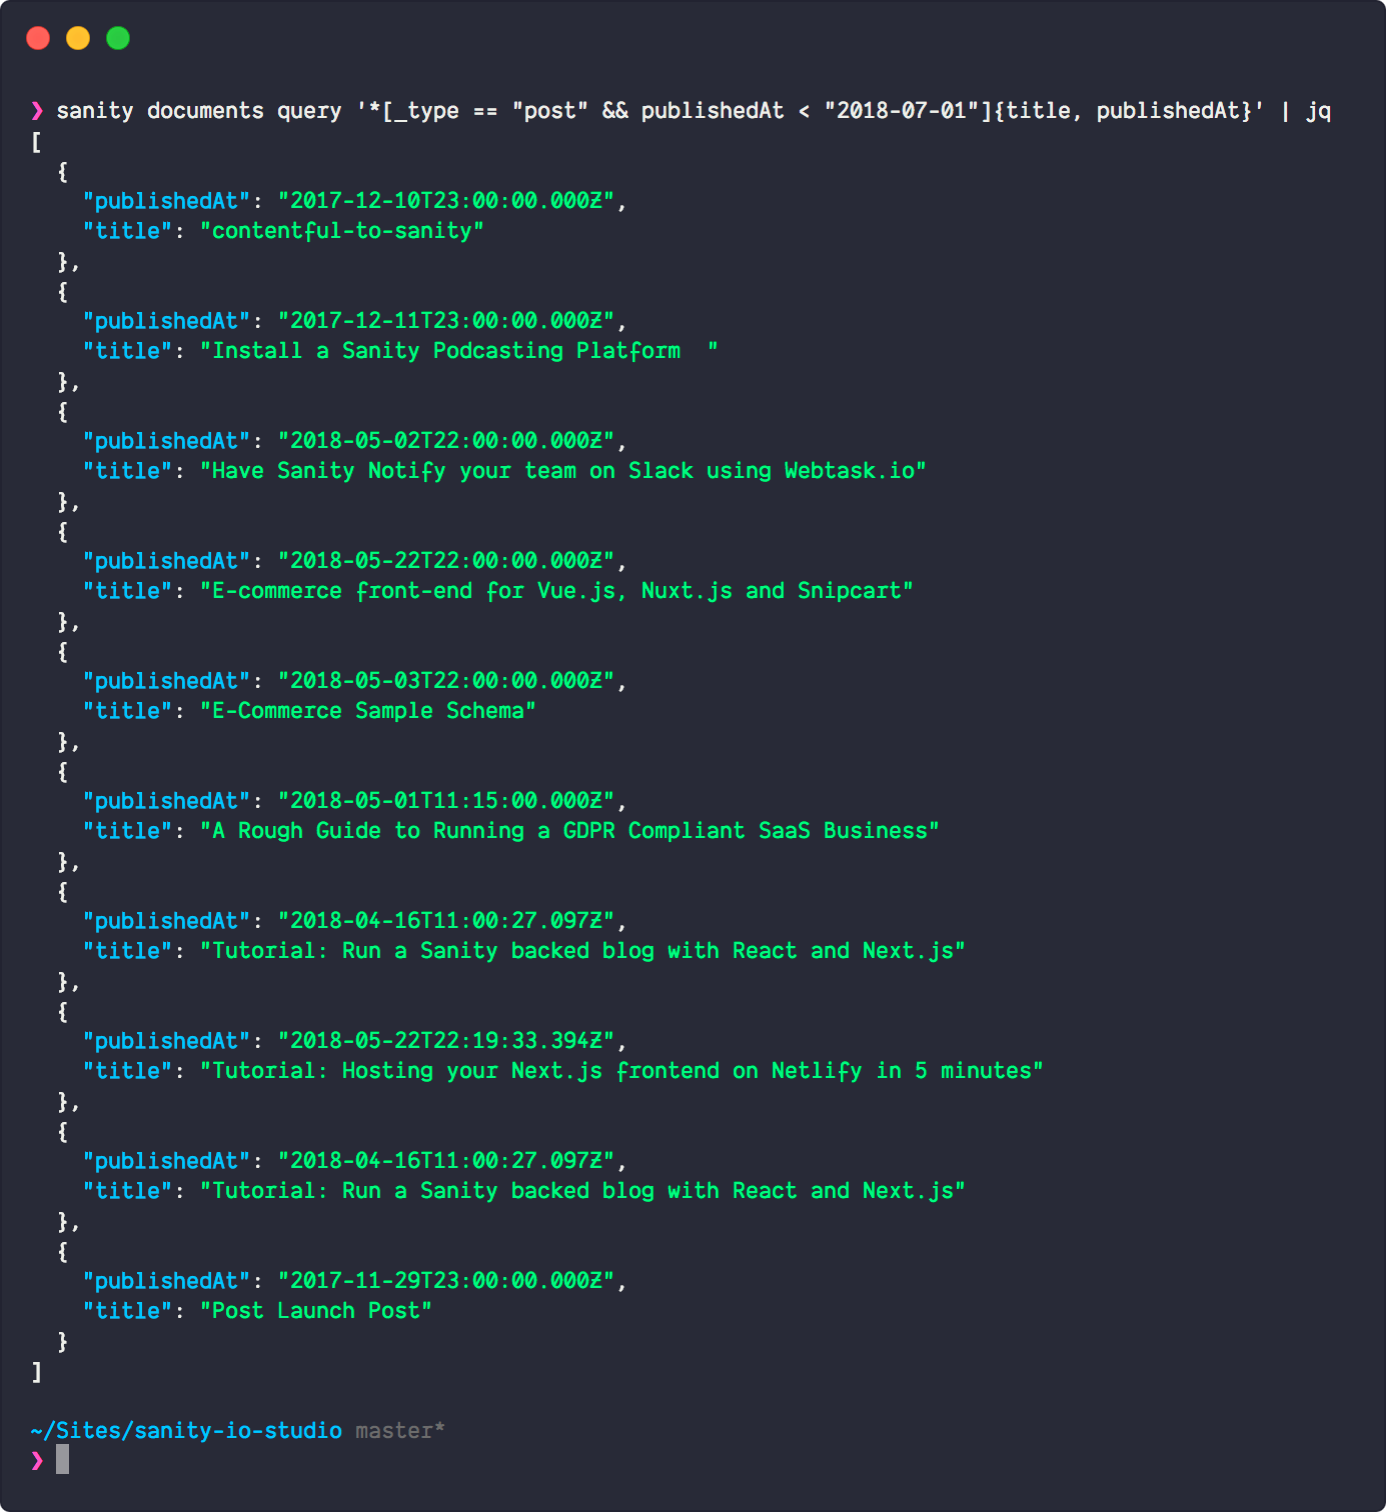 The output from Sanity CLI piped through jq